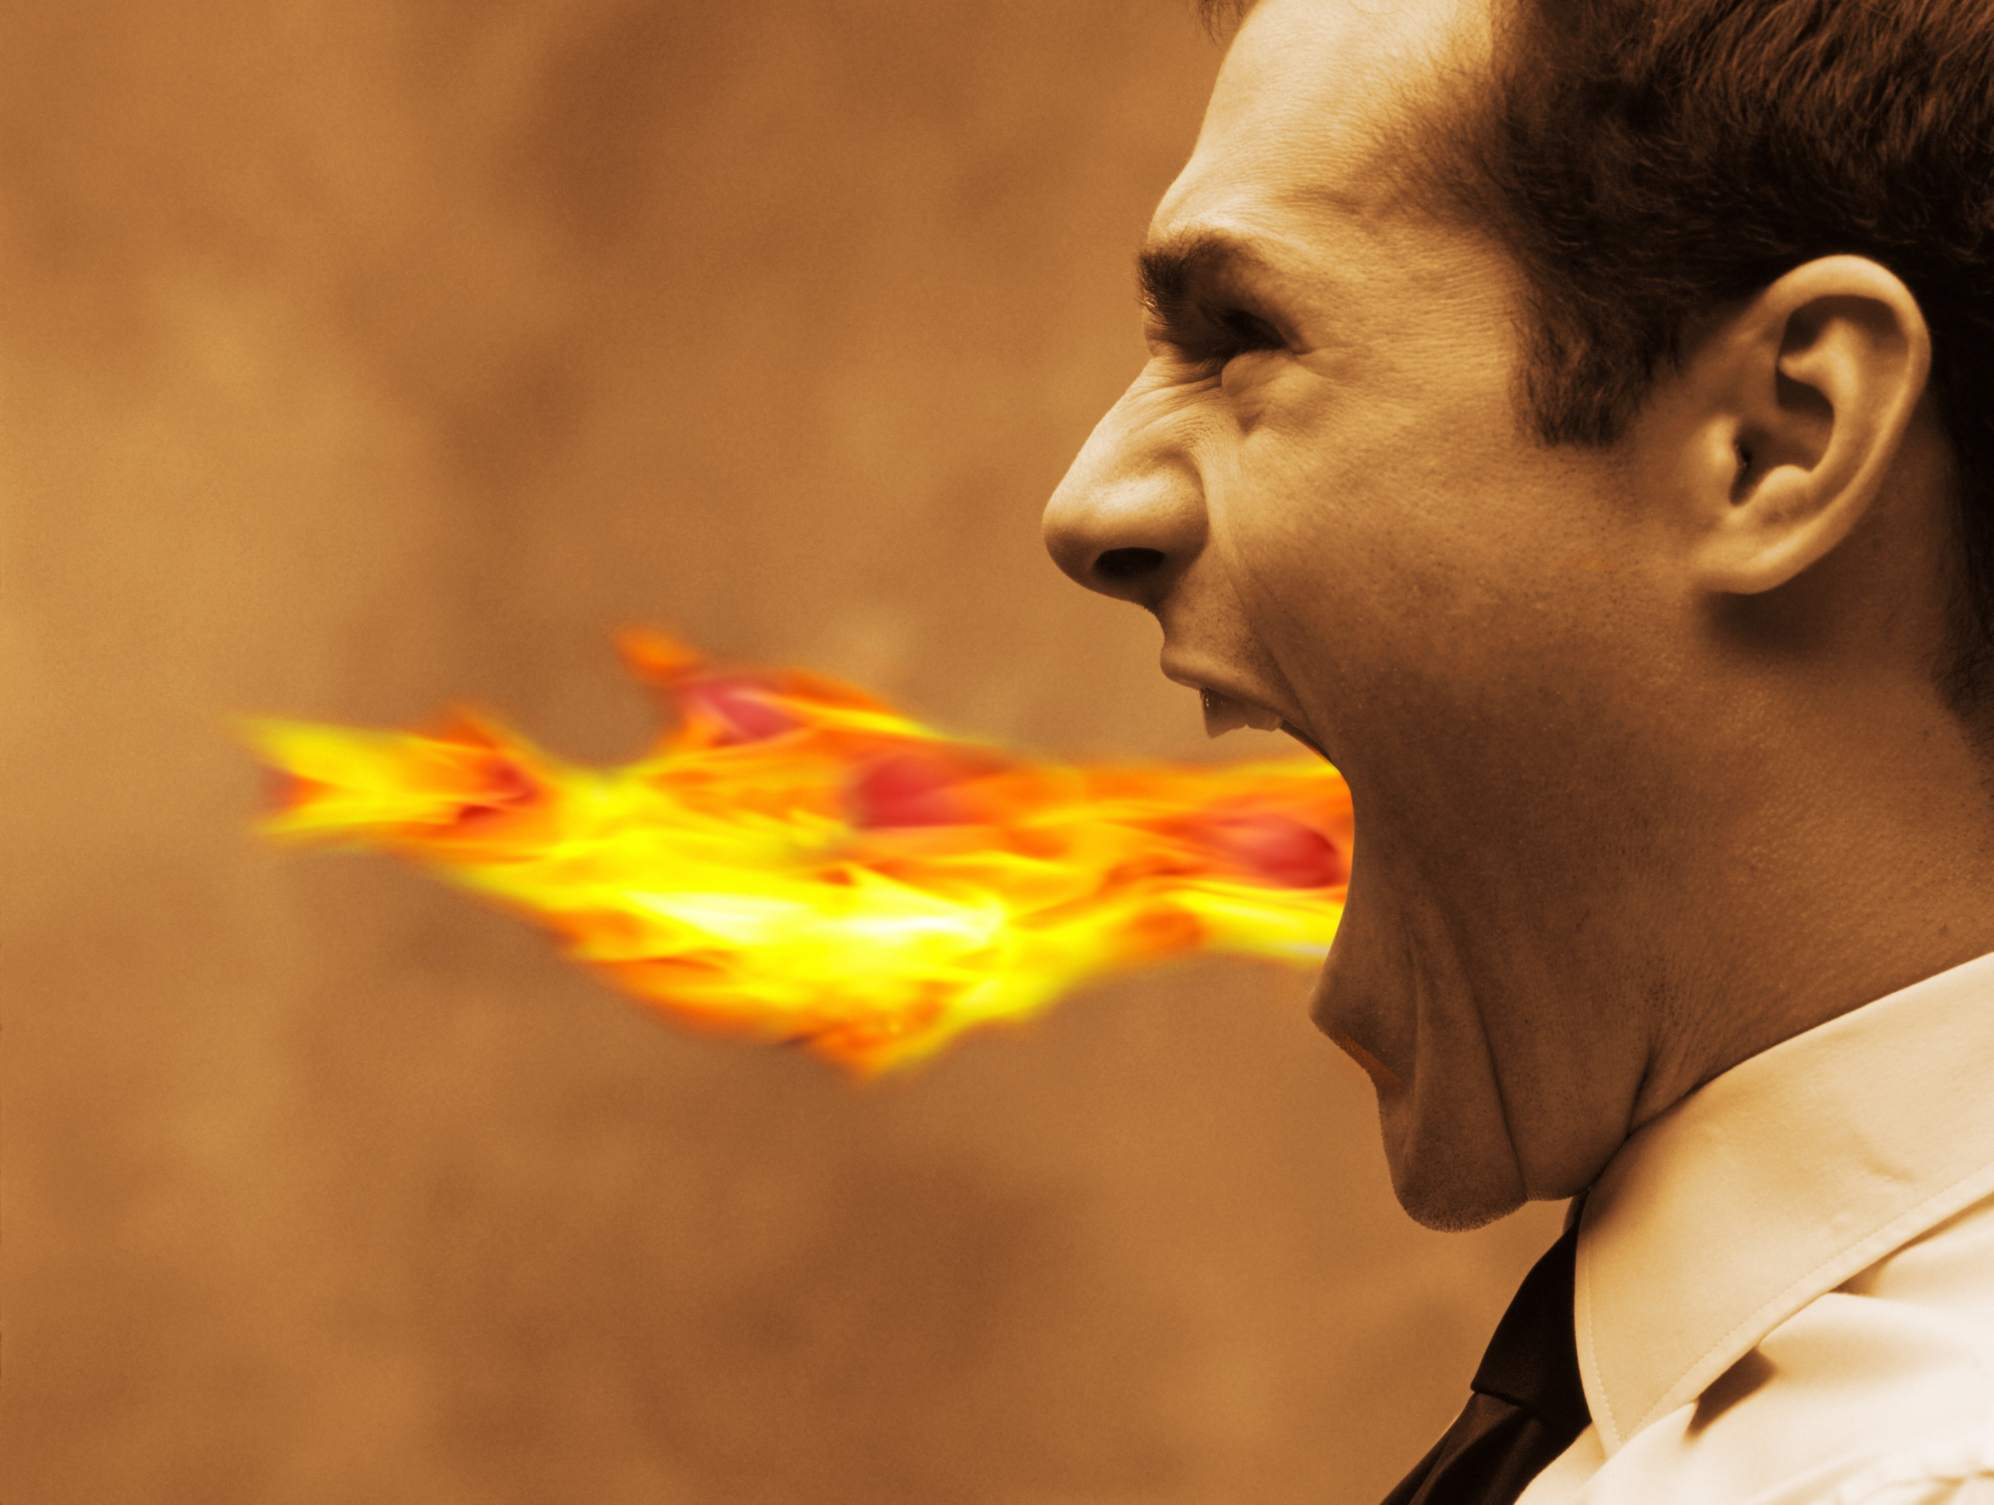 image of a man with flames shooting from his mouth